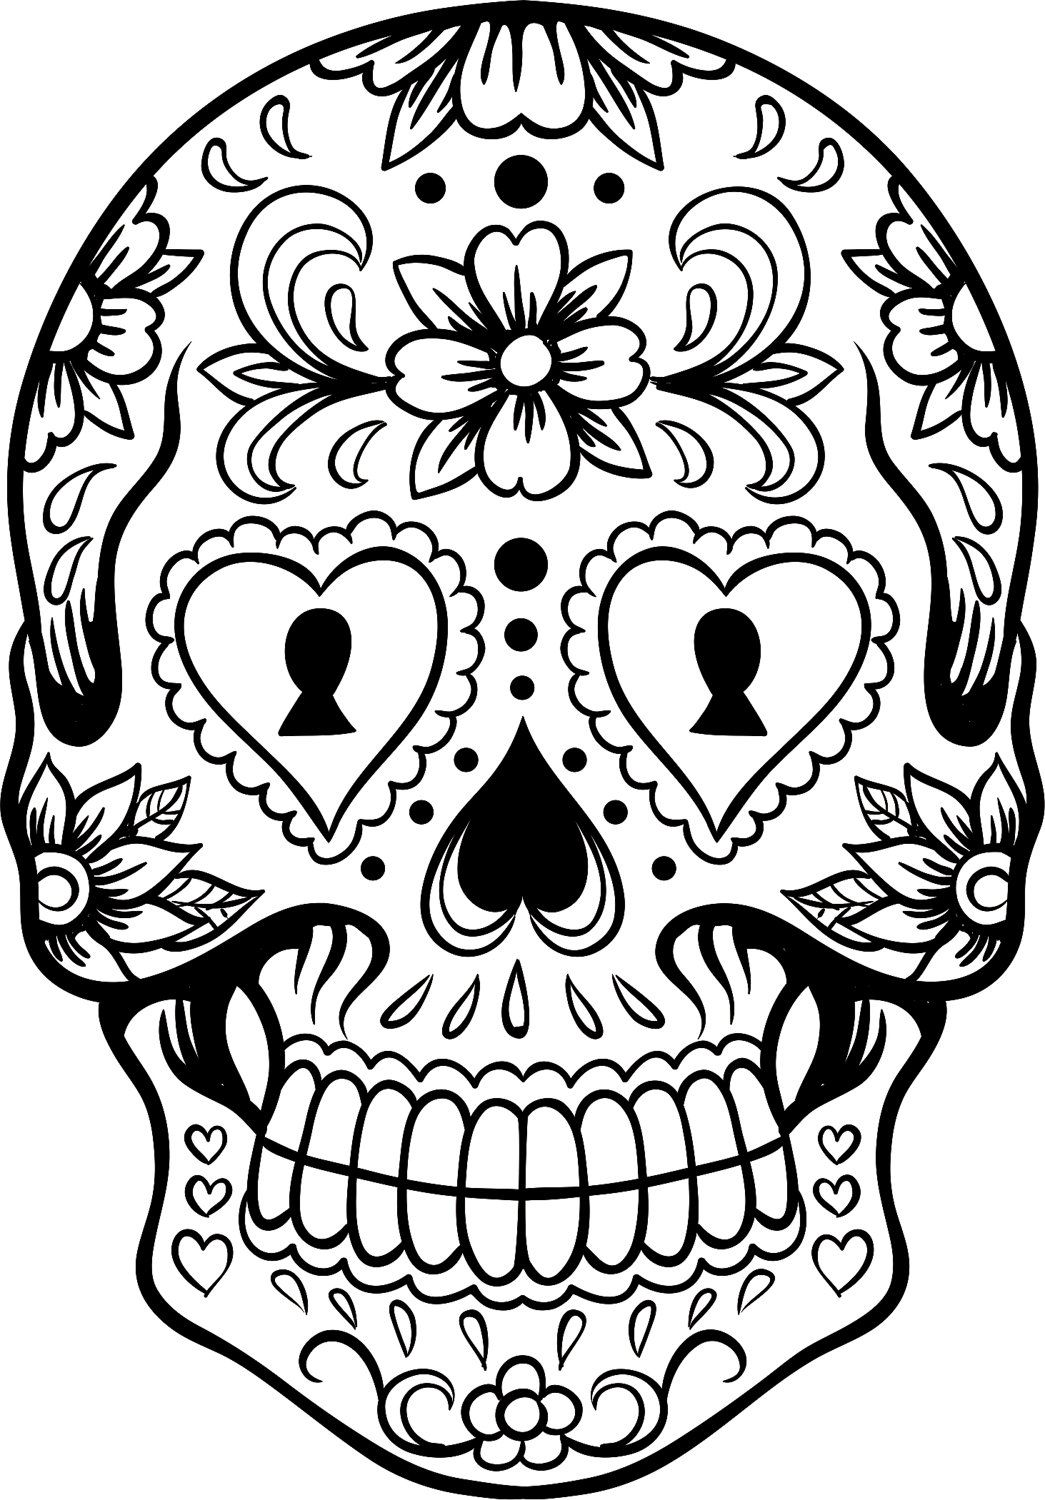 Extra Large Sugar Skull Version 6 Wall Vinyl Decal Sticker Art Tons Of Skulls To Color